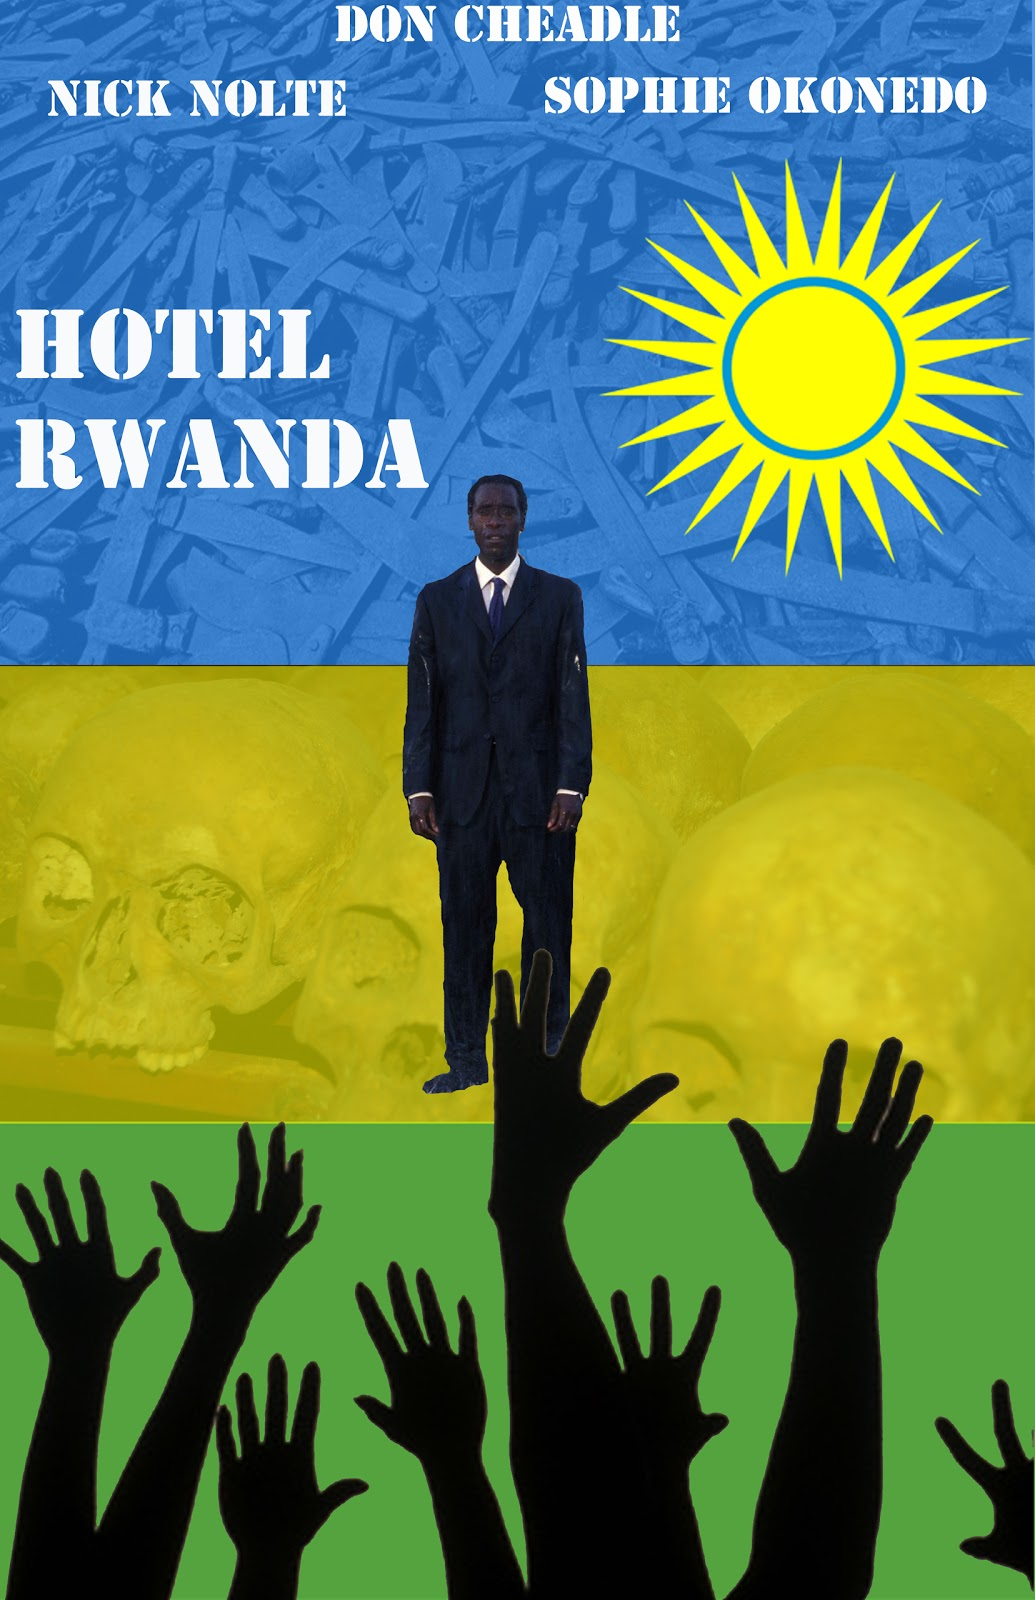 essay about the movie hotel rwanda Hotel rwanda follows a hotel manager, paul rusesabagina, during the rwandan genocide that occurred in 1994 because of paul's job position, he interacts with many european leaders.